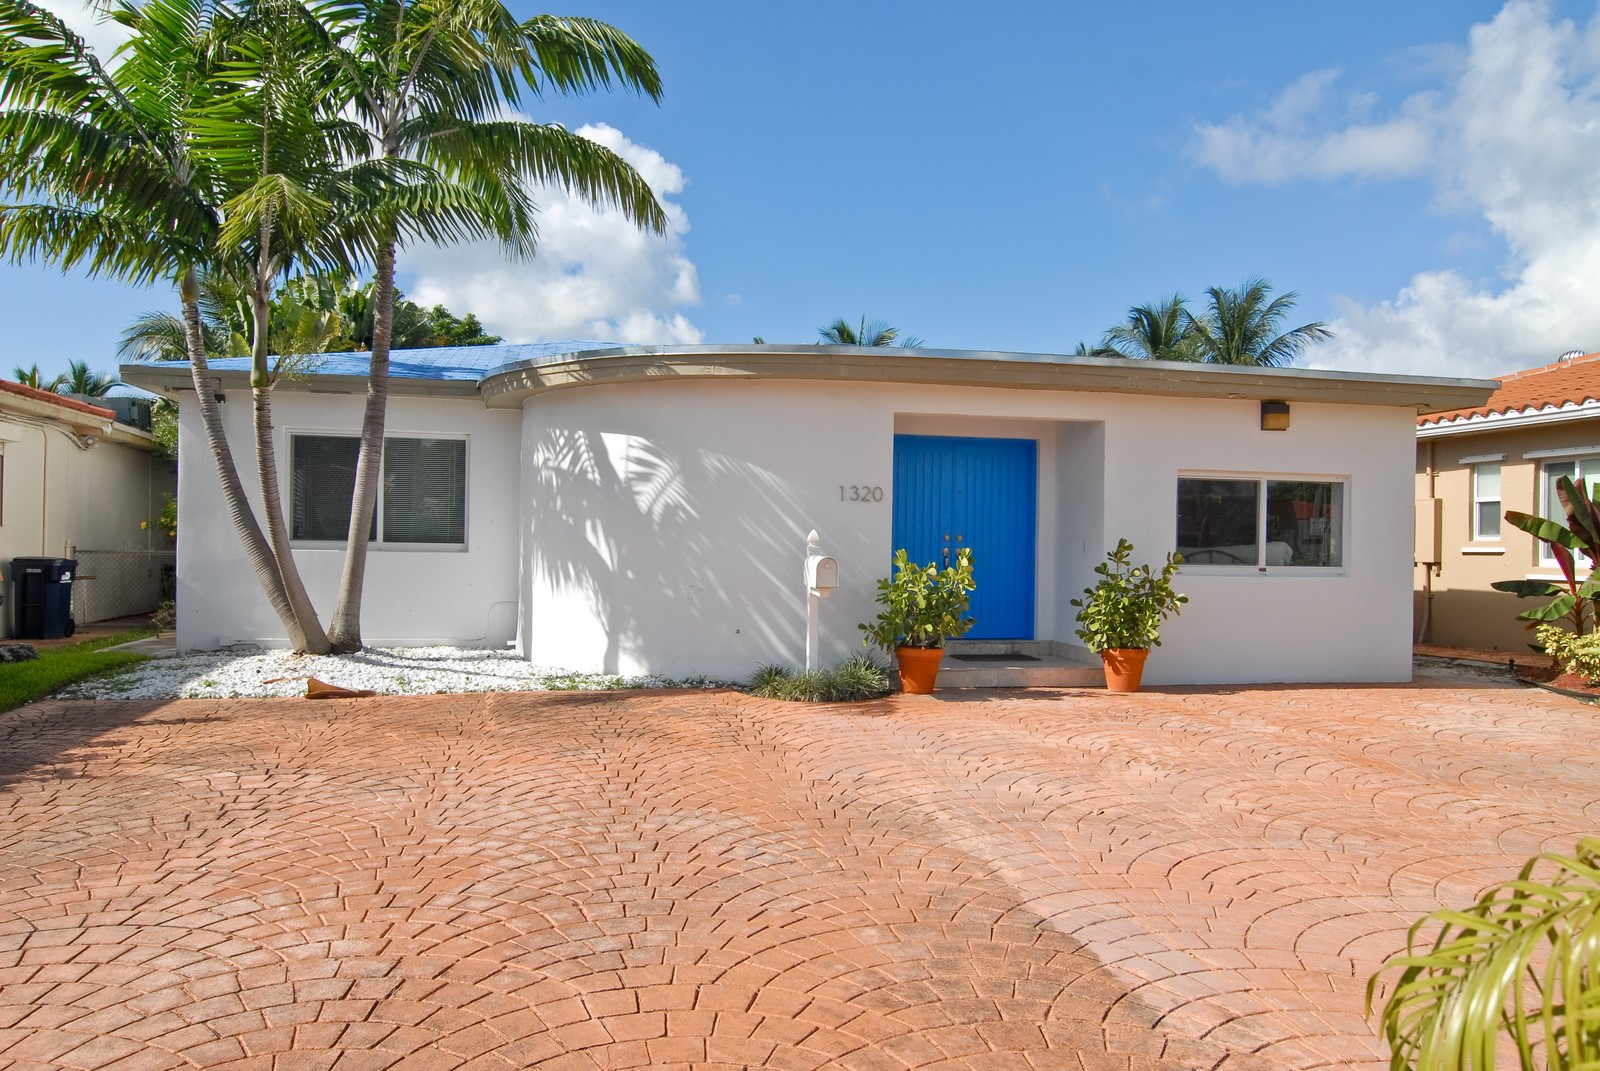 Real Estate Photography - 1320 Still Water Dr, Miami, FL, 33141 - Front View